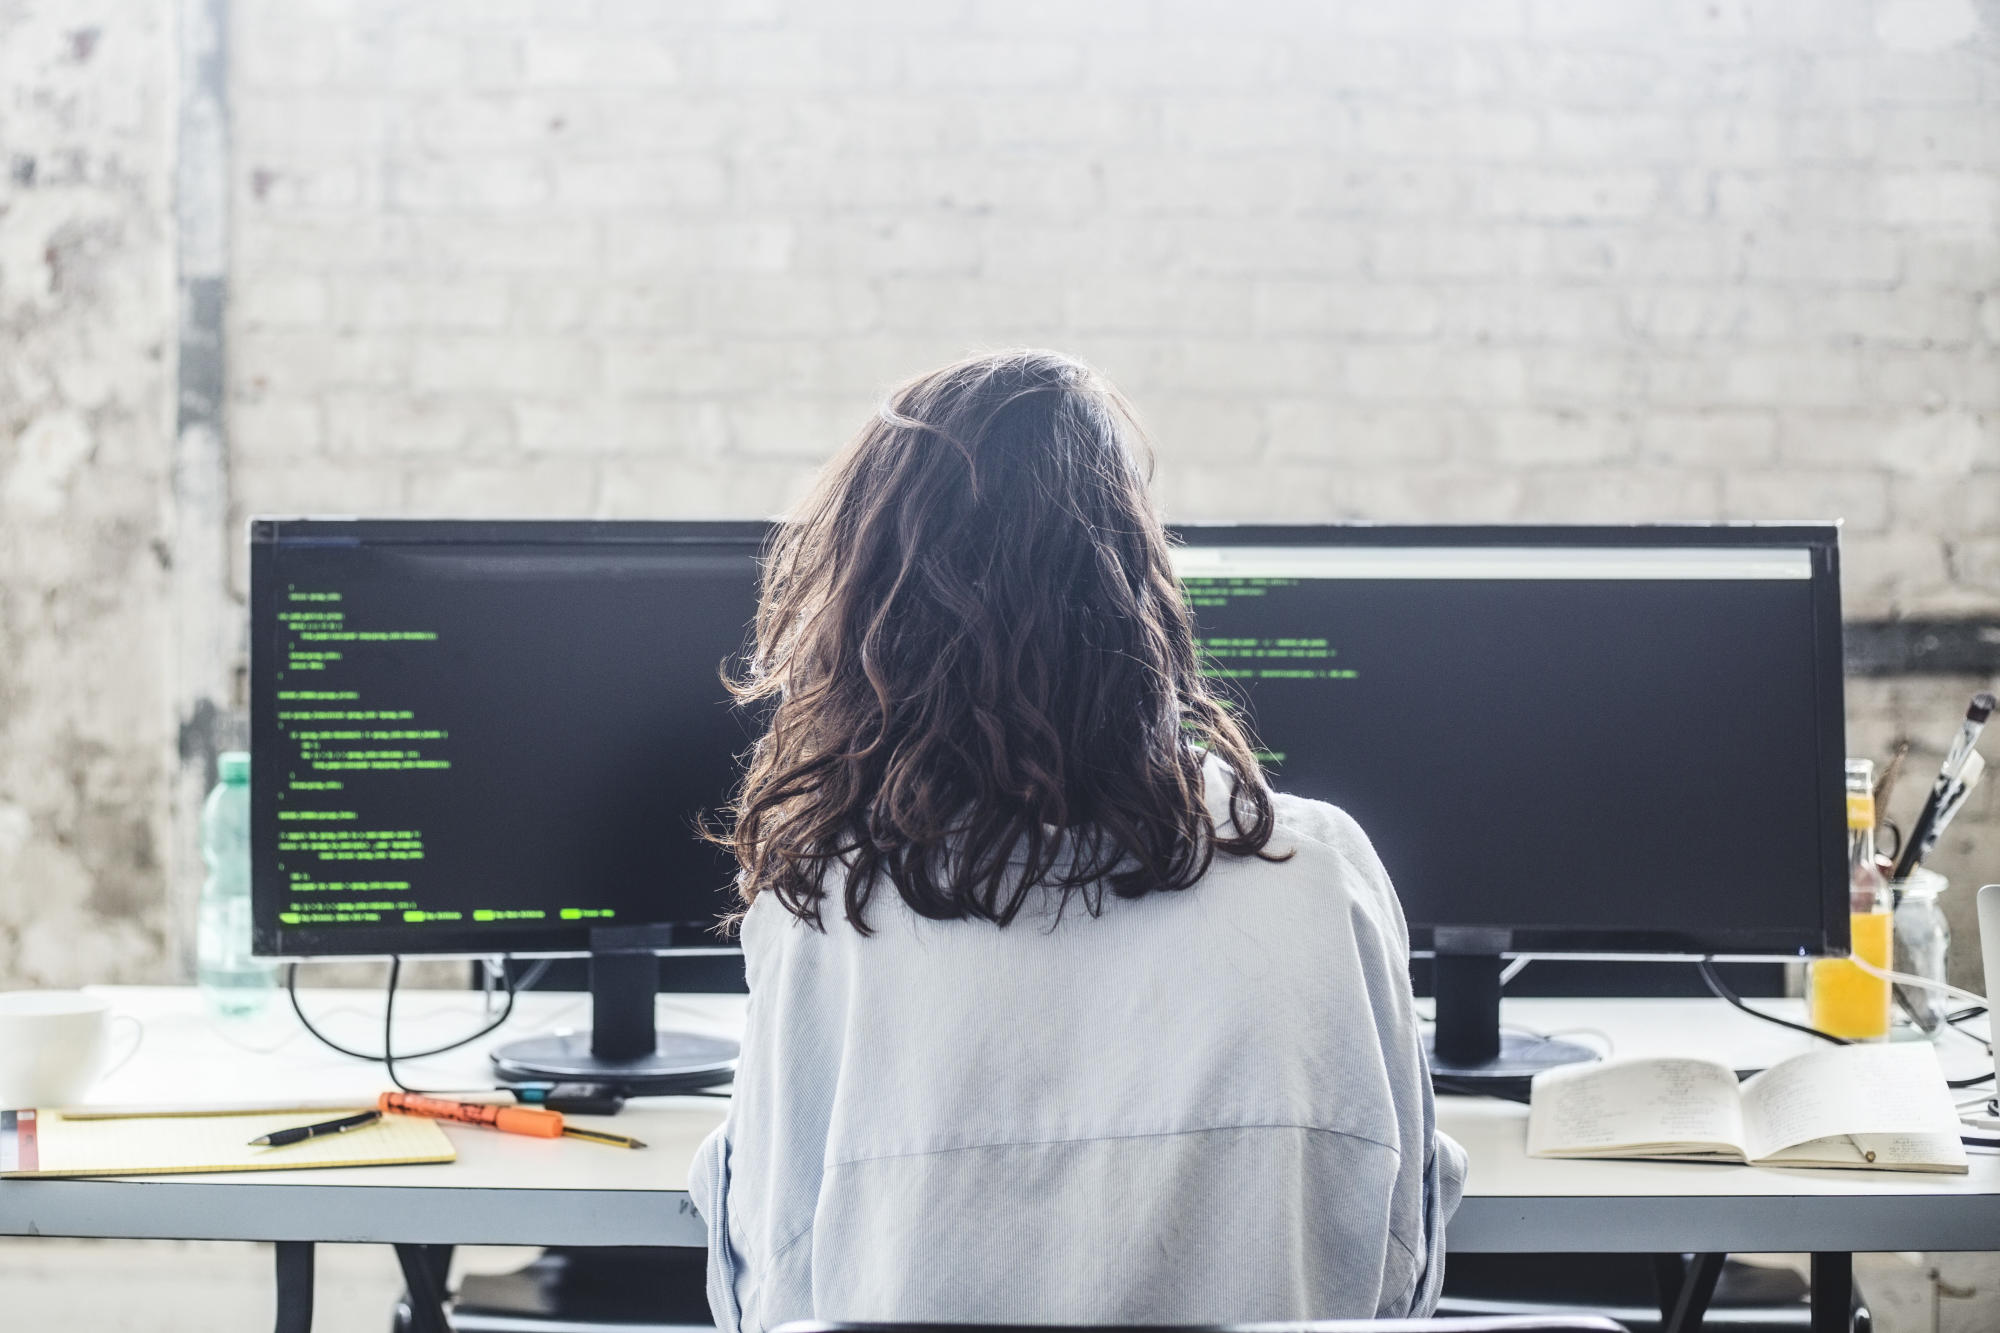 Want to learn coding? Here are some of the best platforms available